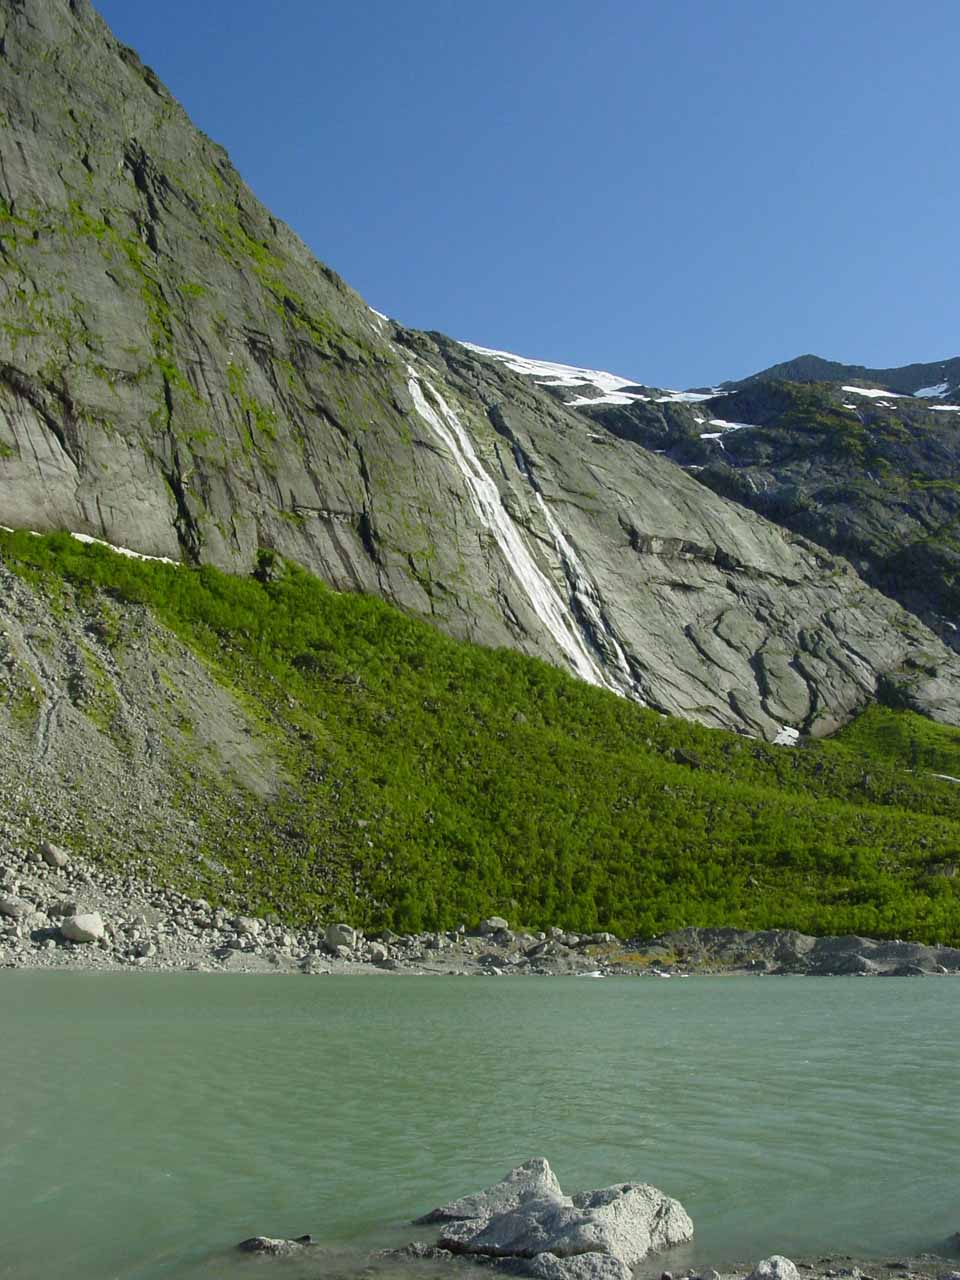 Looking across the Briksdal Valley towards some other waterfall